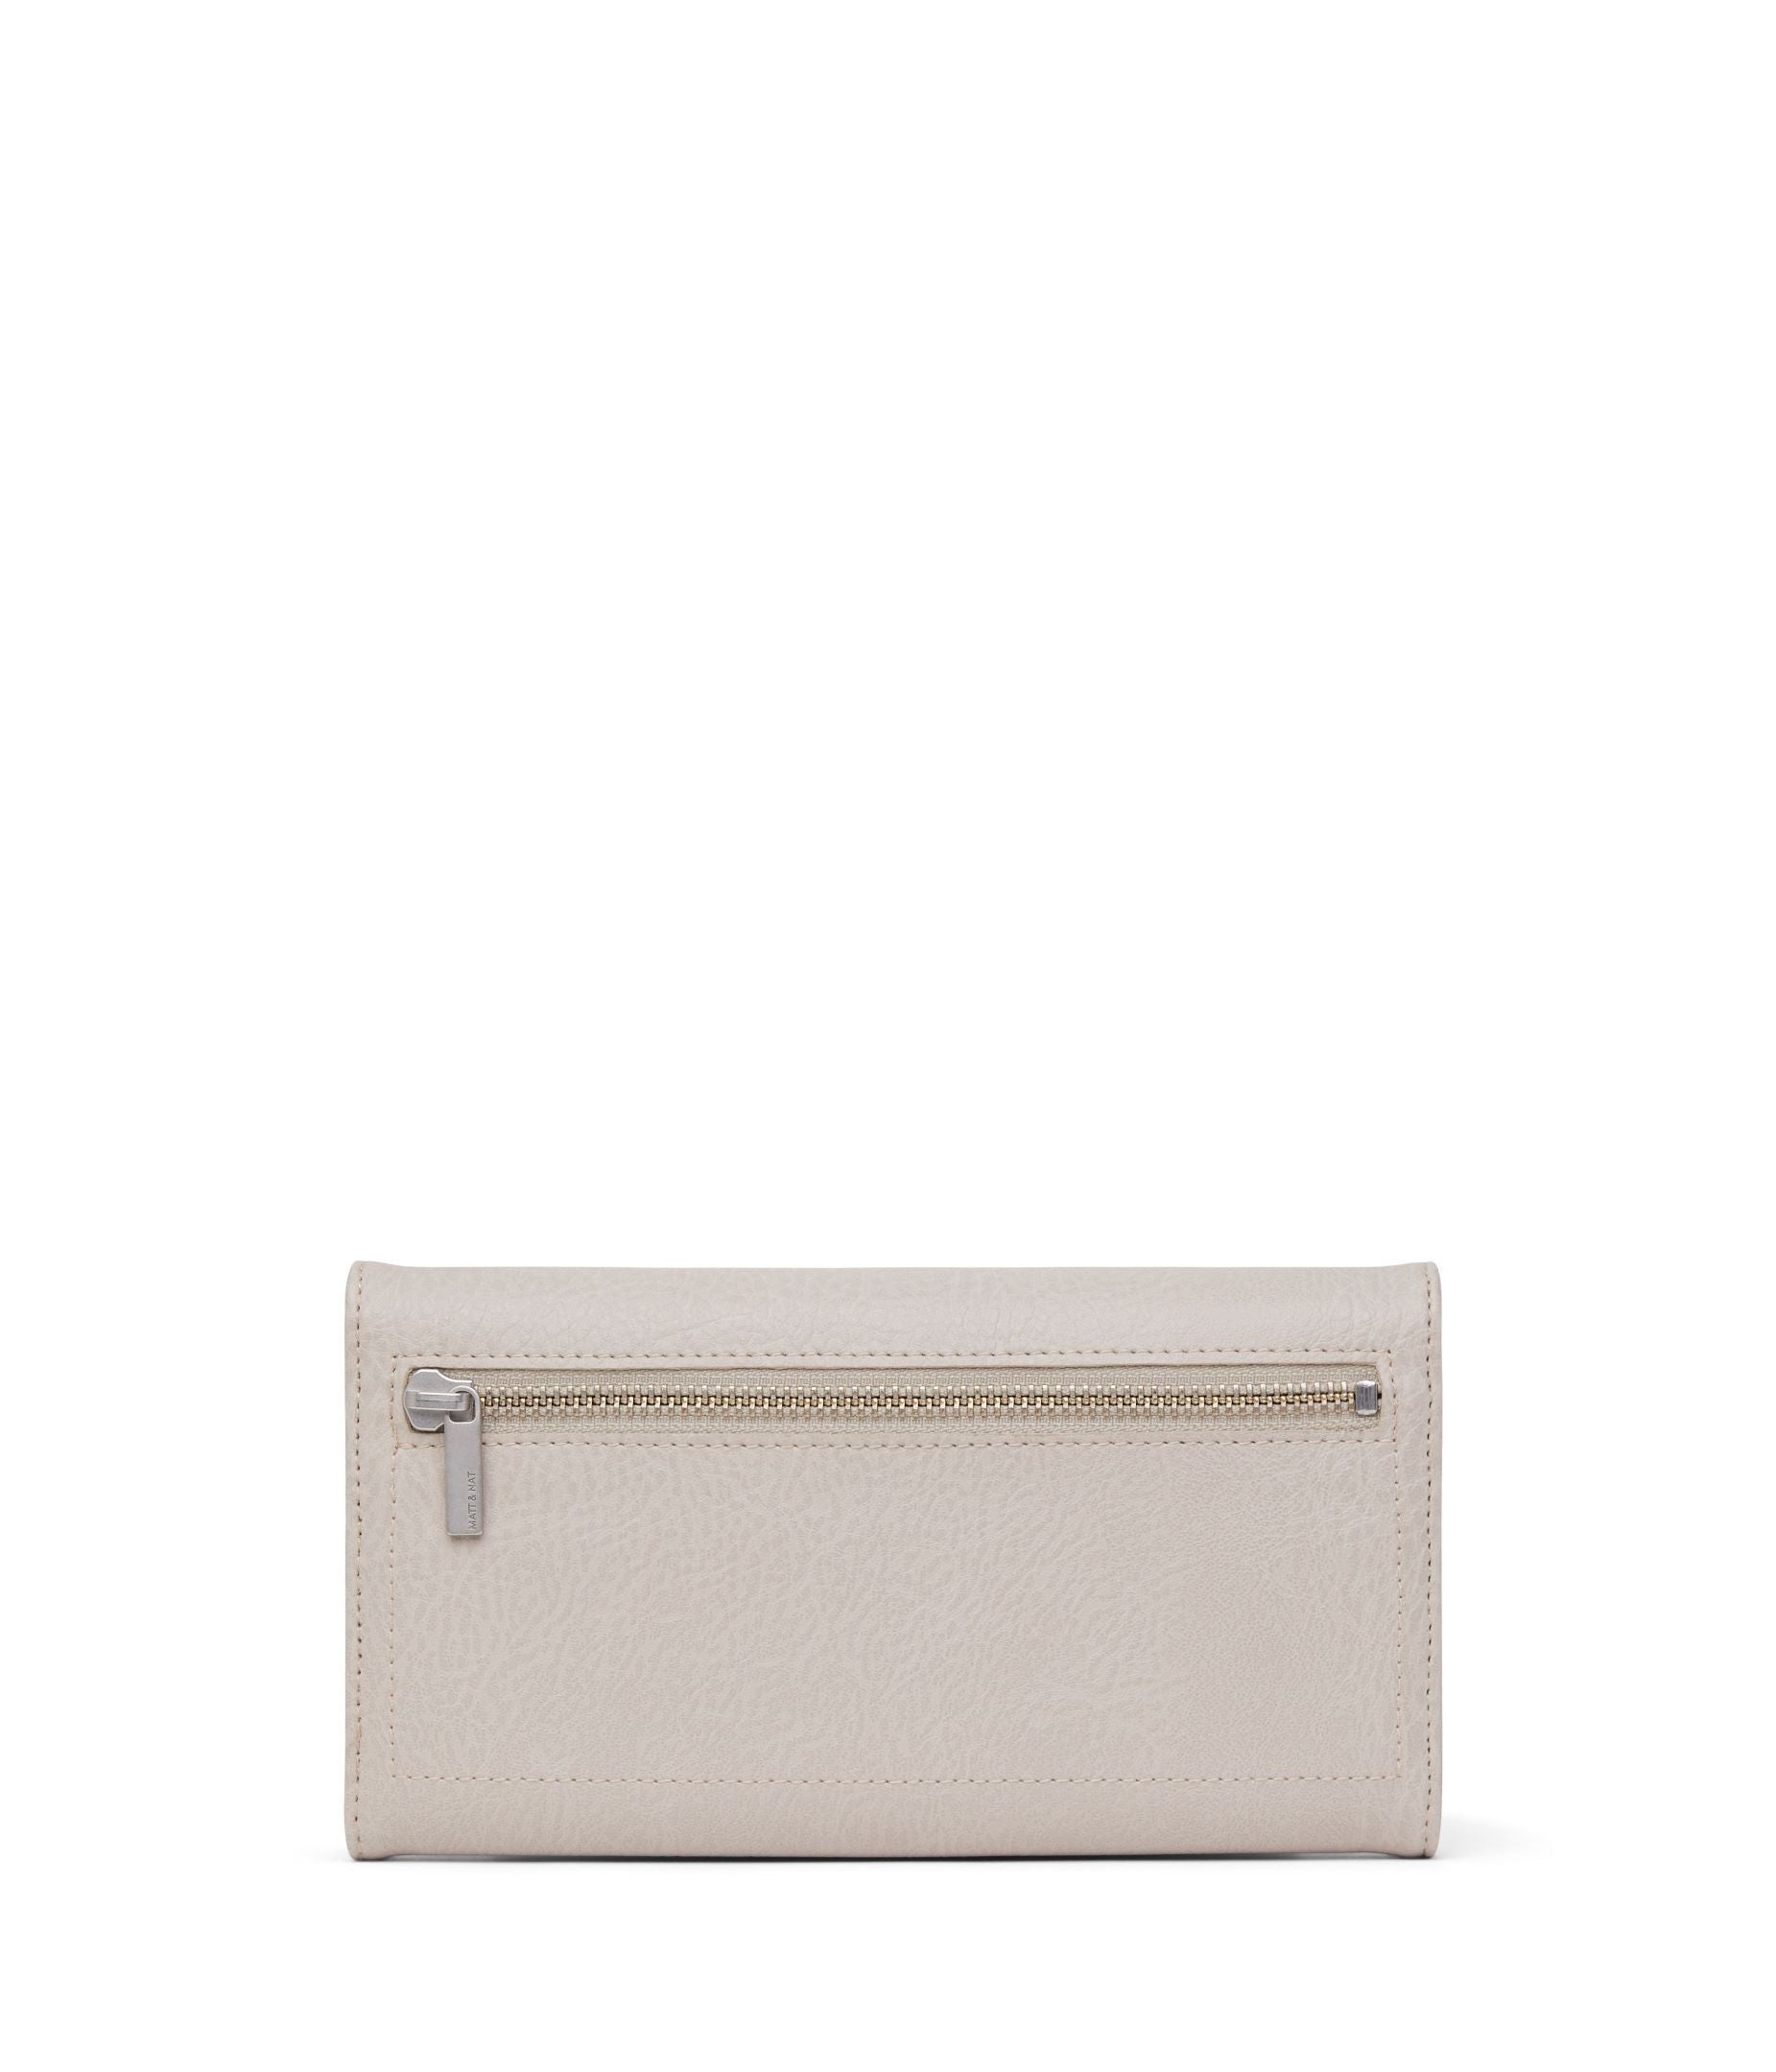 Matt & Nat Wallet - Ilda Koala